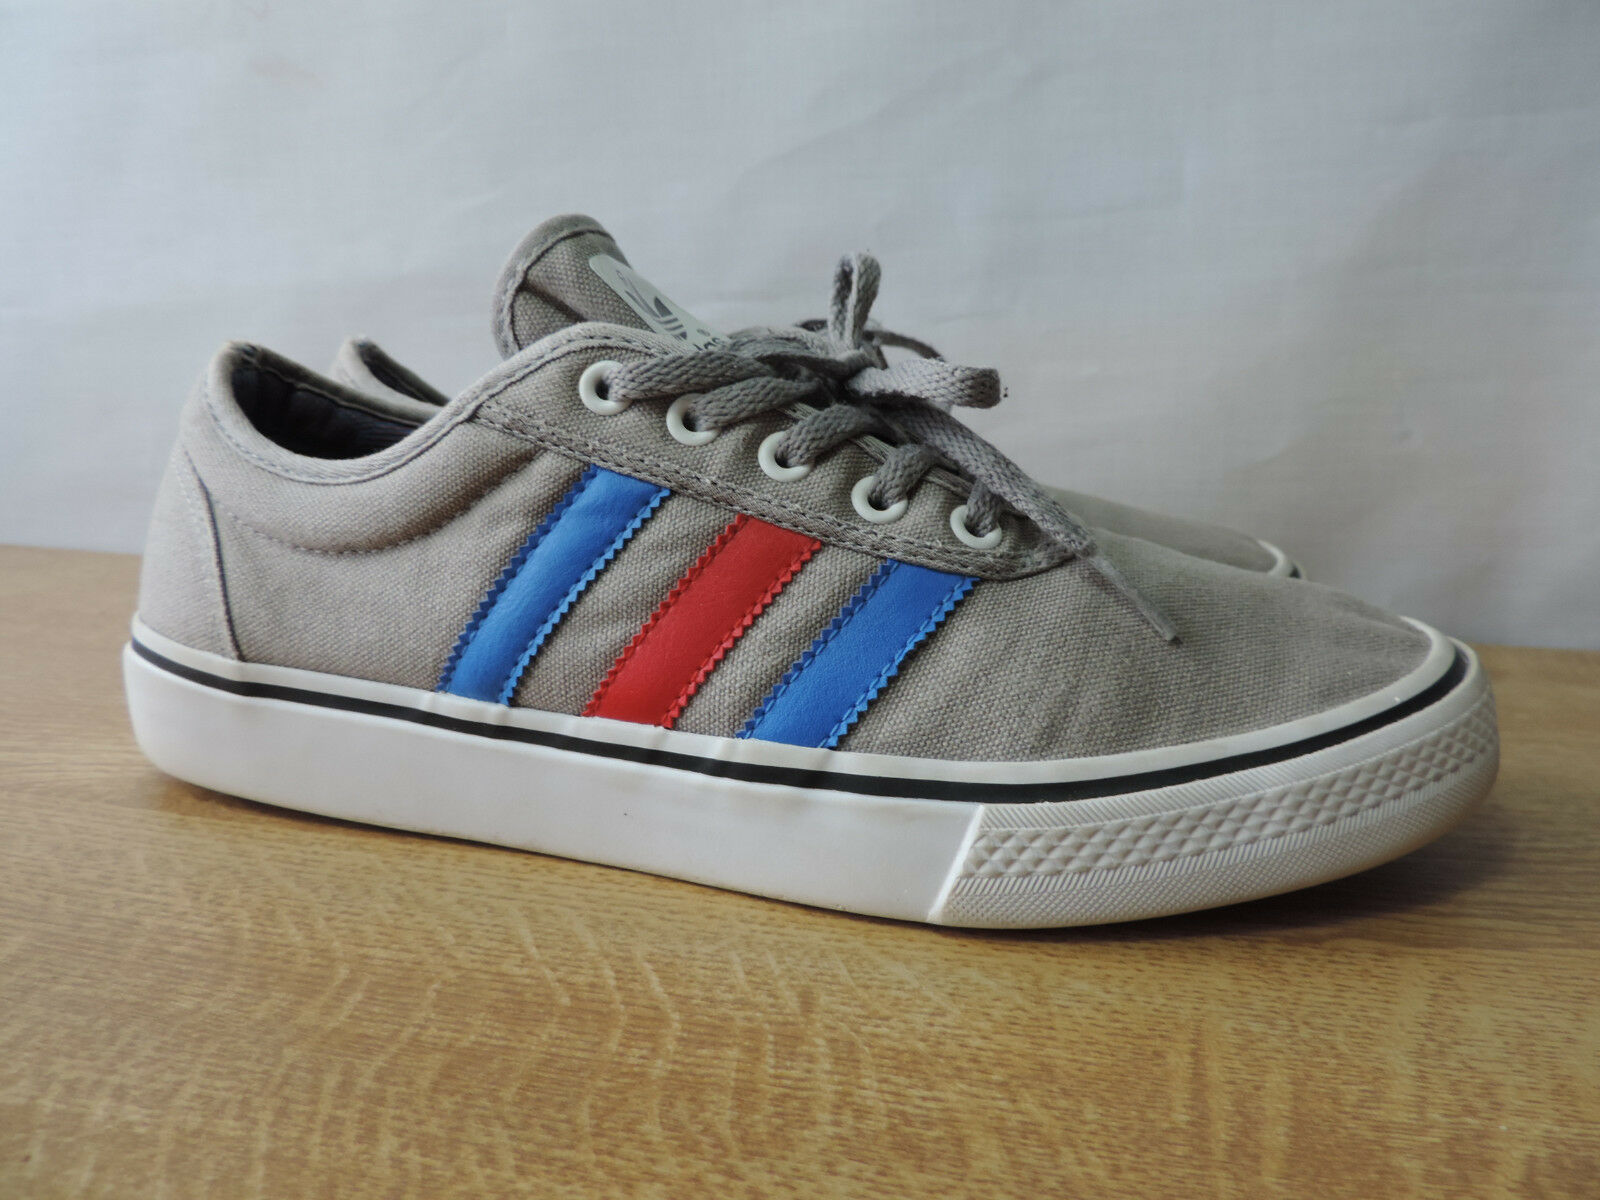 Men's adidas Originals adi Ease Low ST Shoes Shift Grey Bluebird G51272 Wild casual shoes